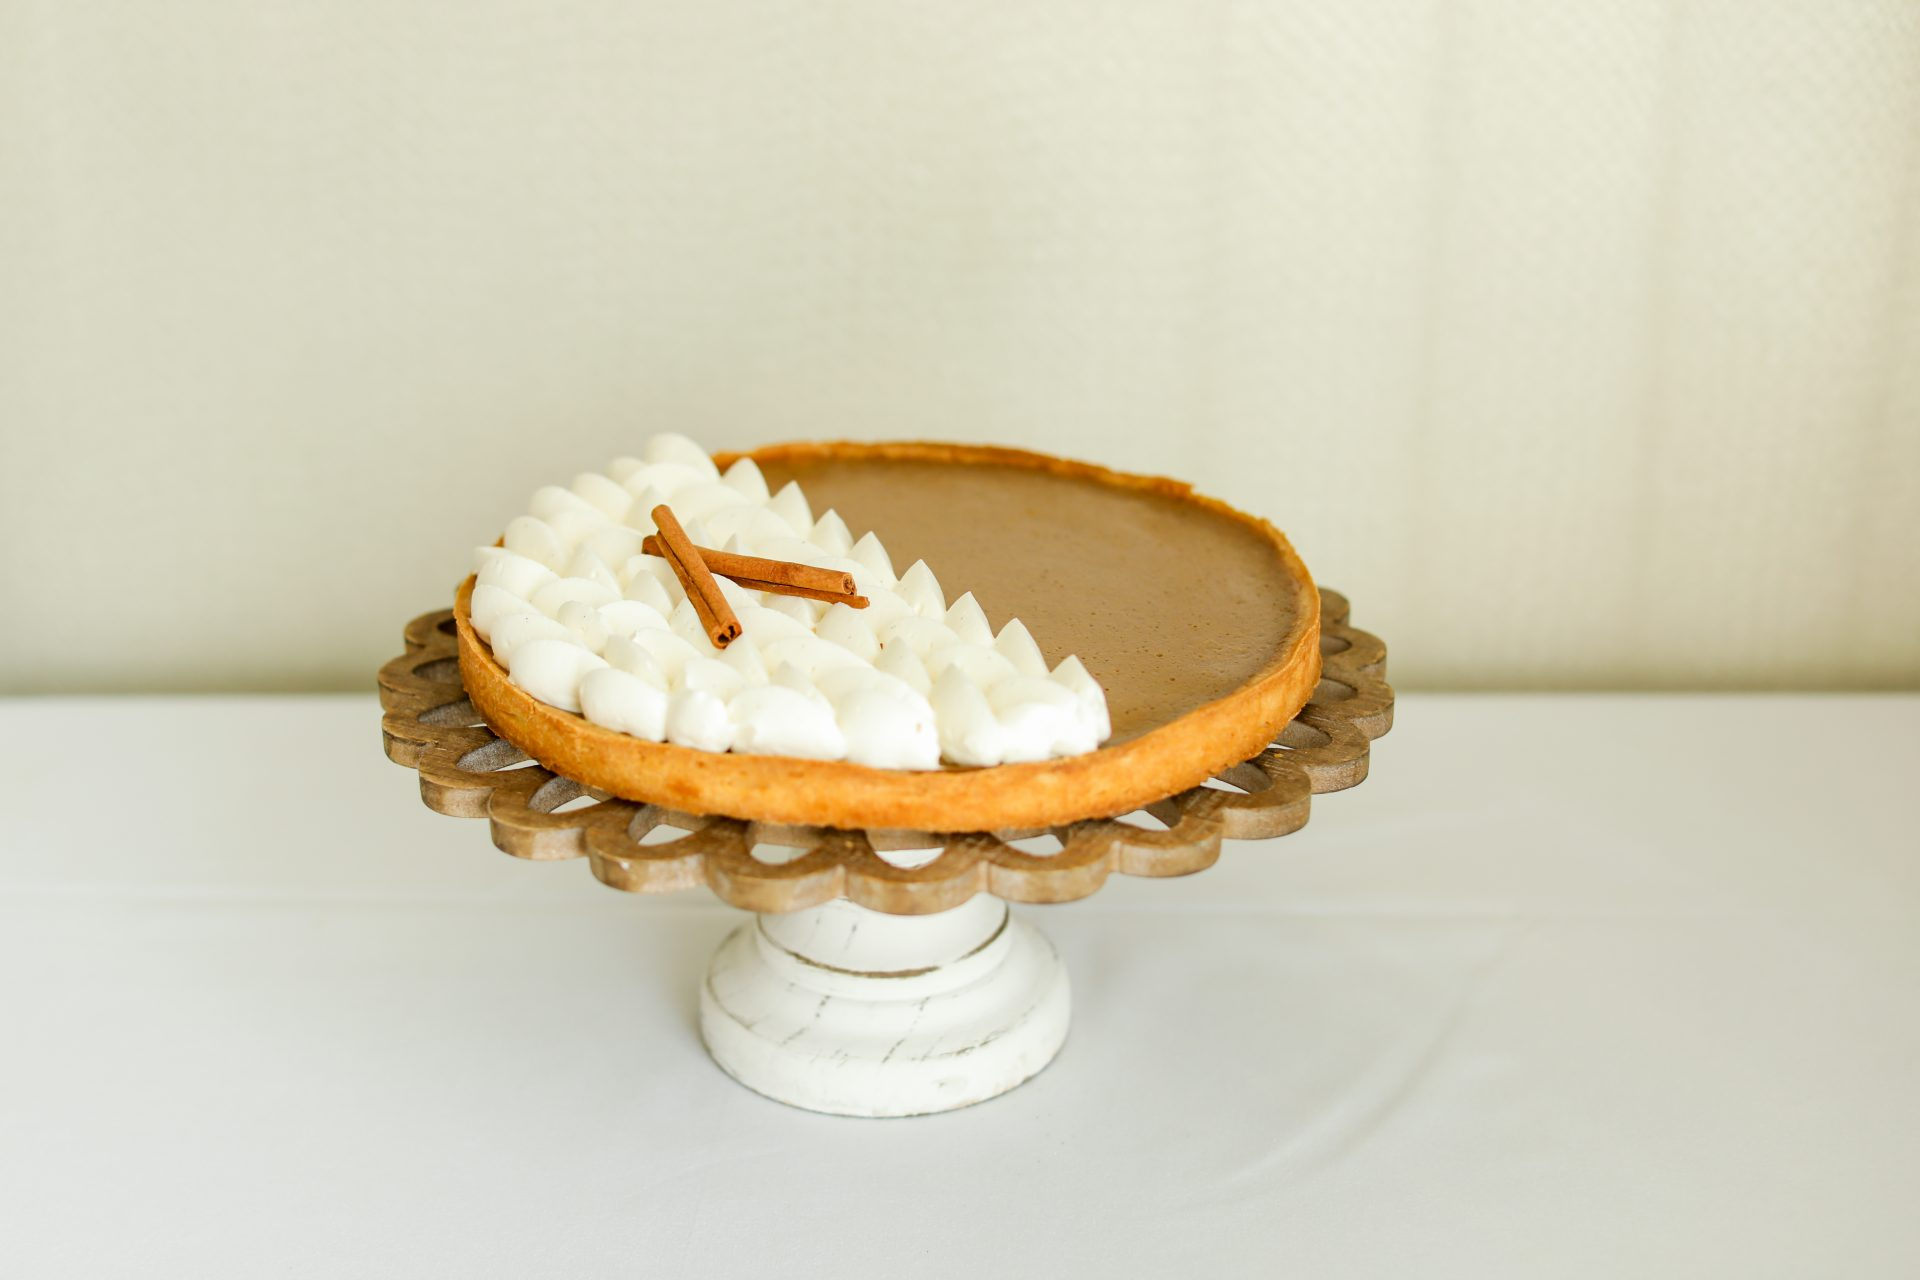 pumpkin pie adorned with chantilly cream and cinnamon stick displayed on a wooden stand